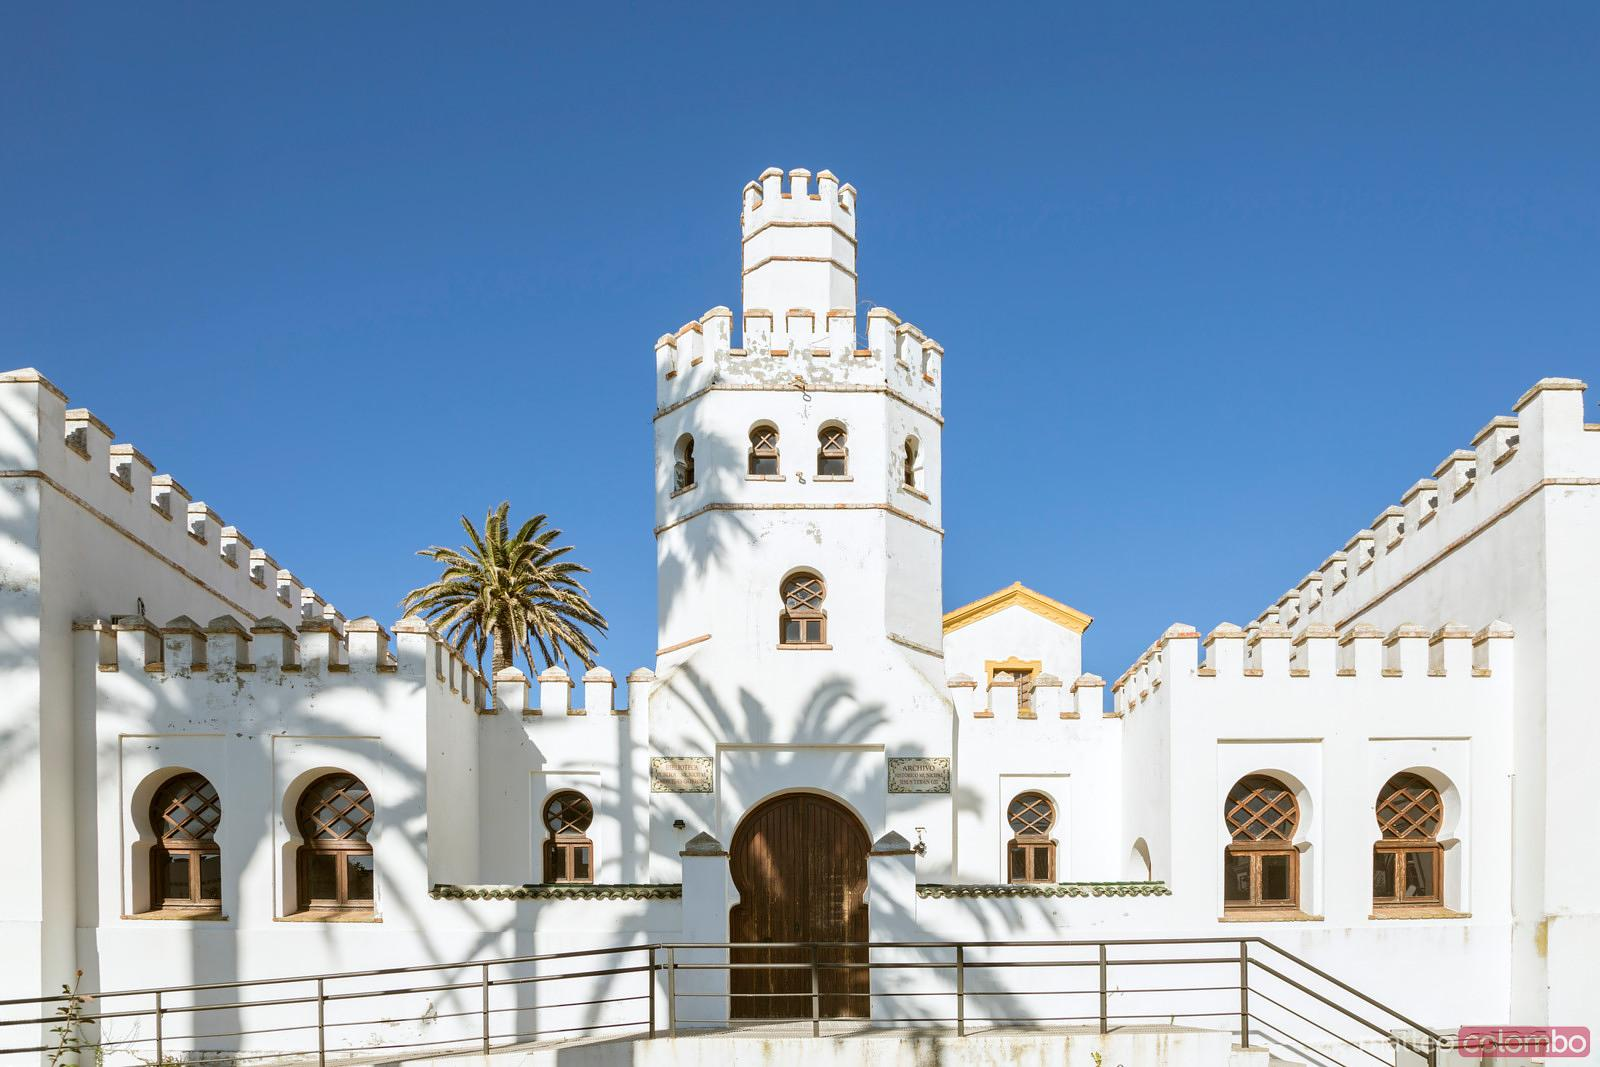 Historical building in the old town of Tarifa, Andalusia, Spain